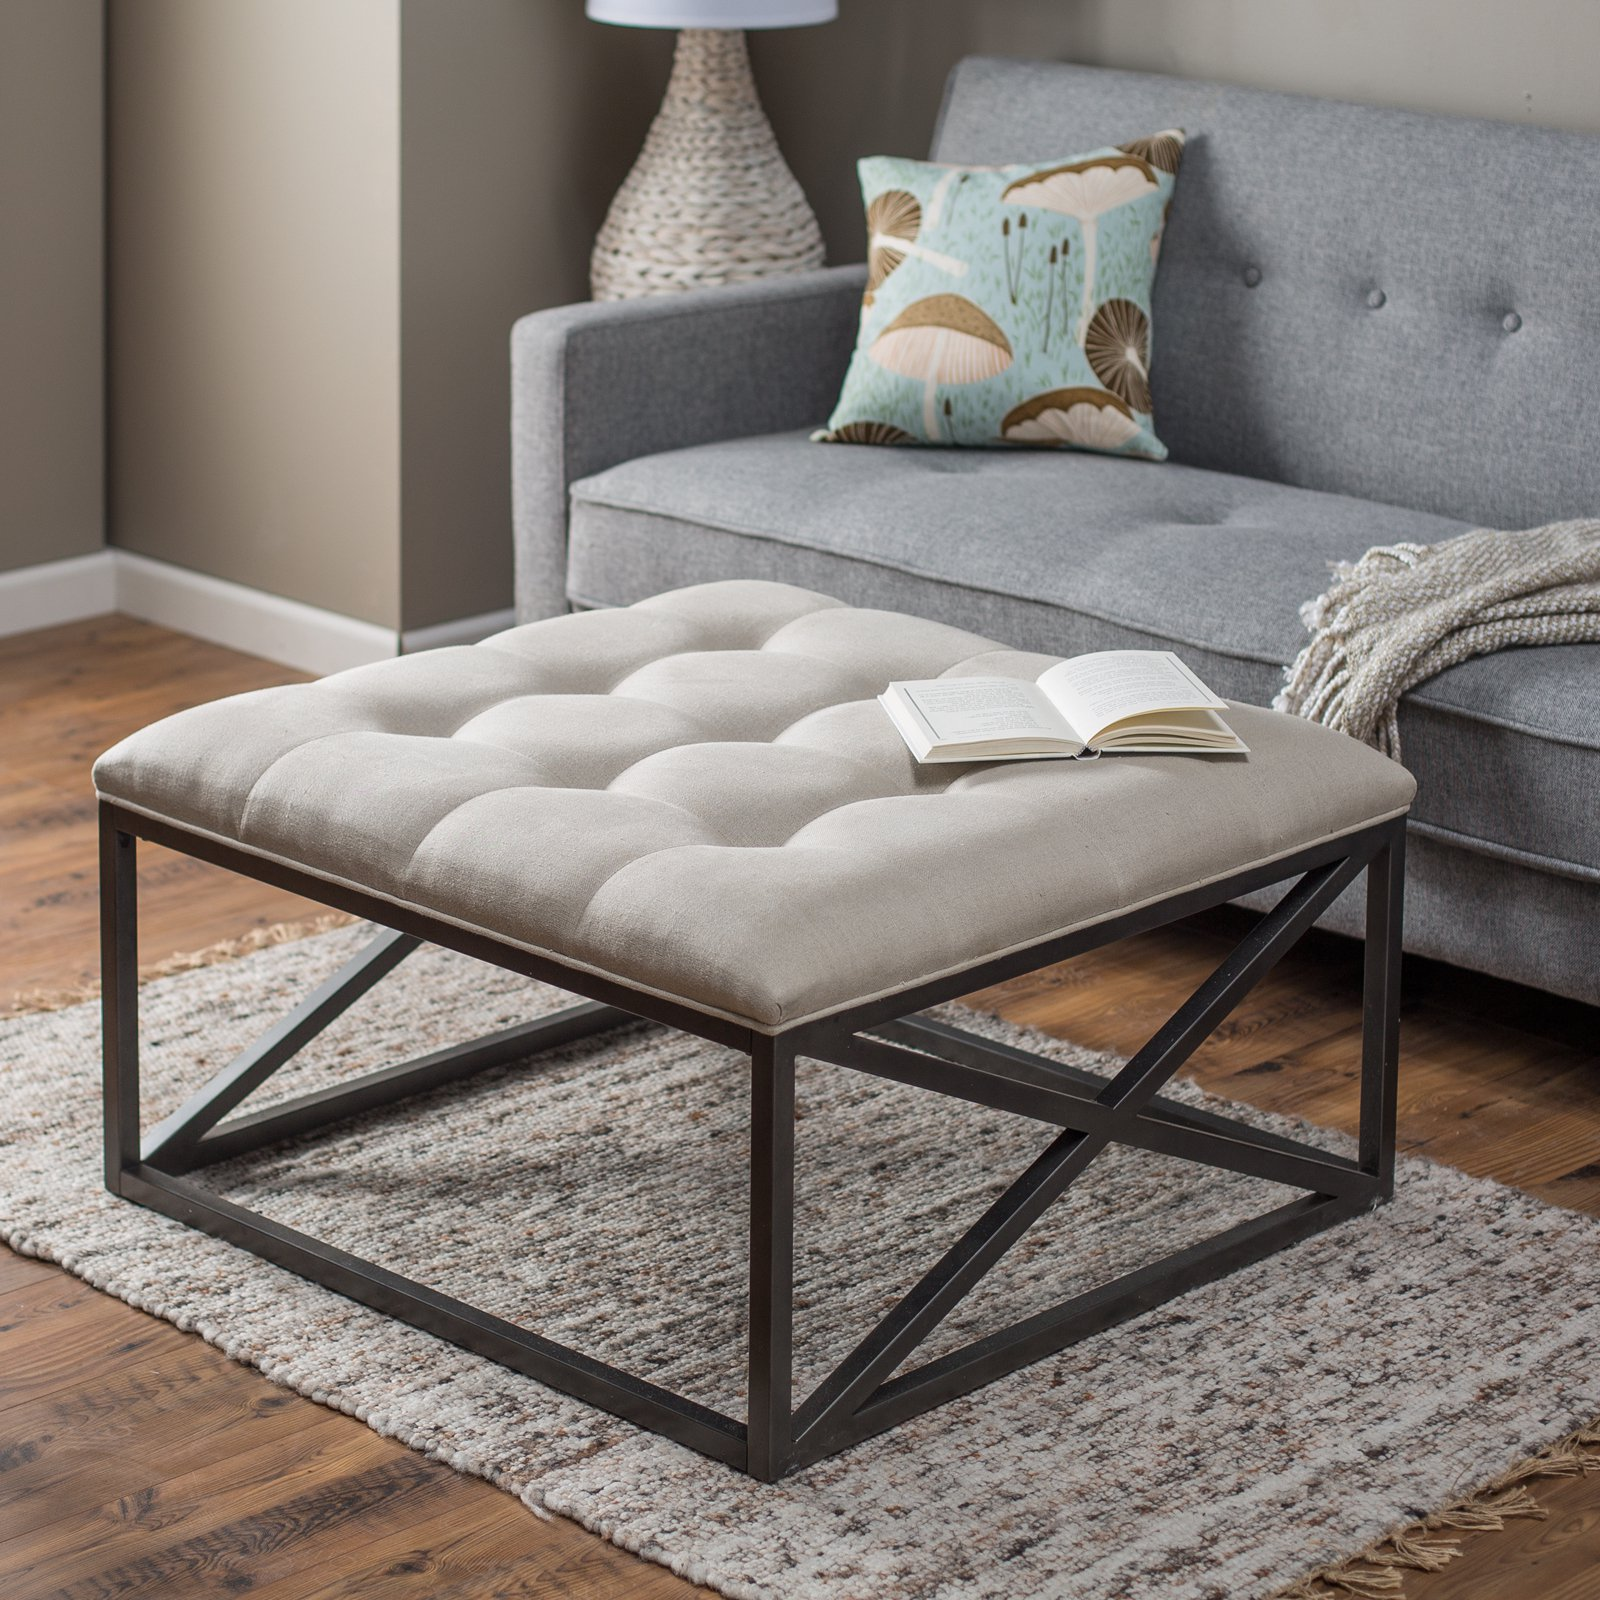 Ottoman Coffee Table 8 Plush Tufted Ottomans To Add Comfort And Functionality